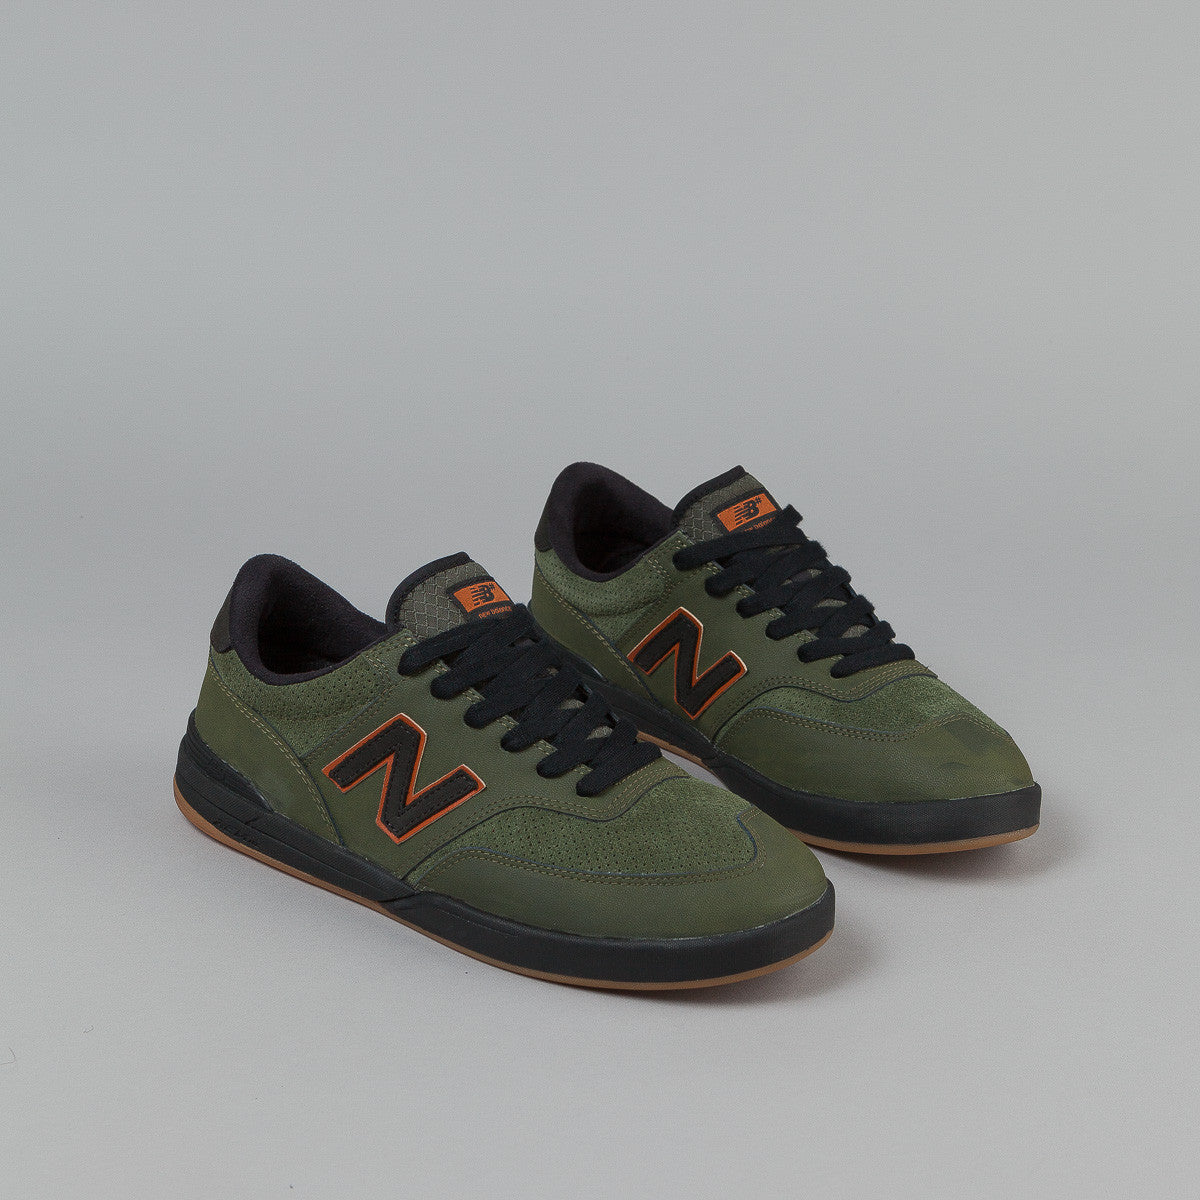 New Balance Numeric Allston 617 Shoes - Olive / Black